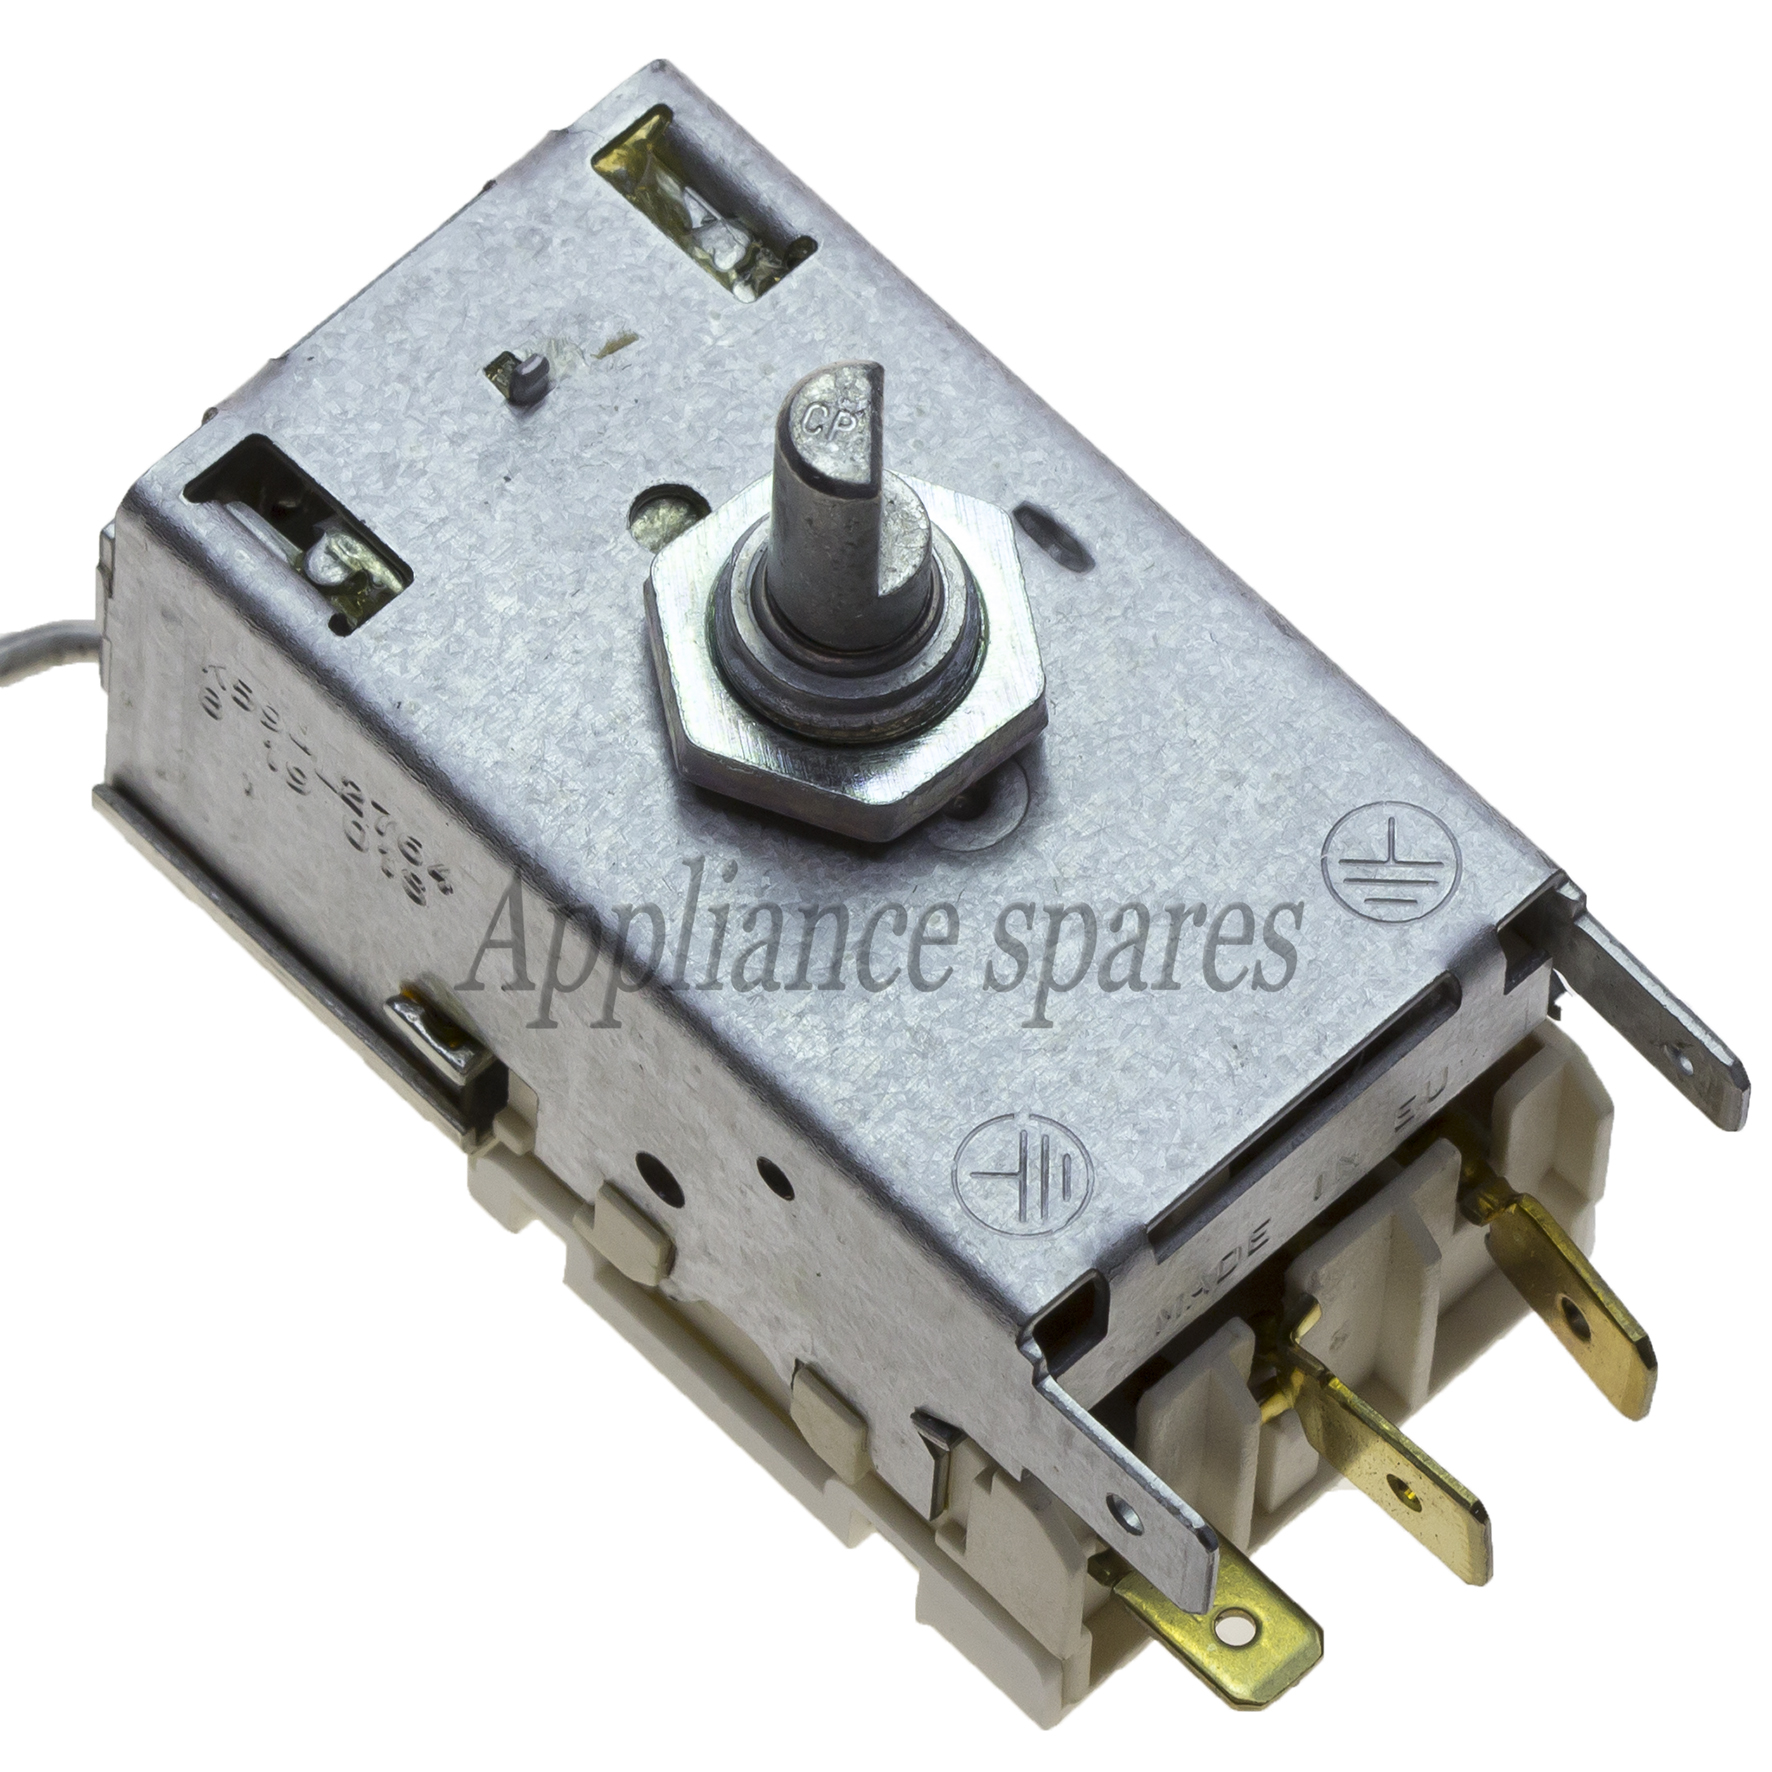 double door fridge thermostat lategan and van biljoens appliance rh appliancespares co za tfx2ojrxfwh refrigerator thermostat wiring tfx2ojrxfwh refrigerator thermostat wiring